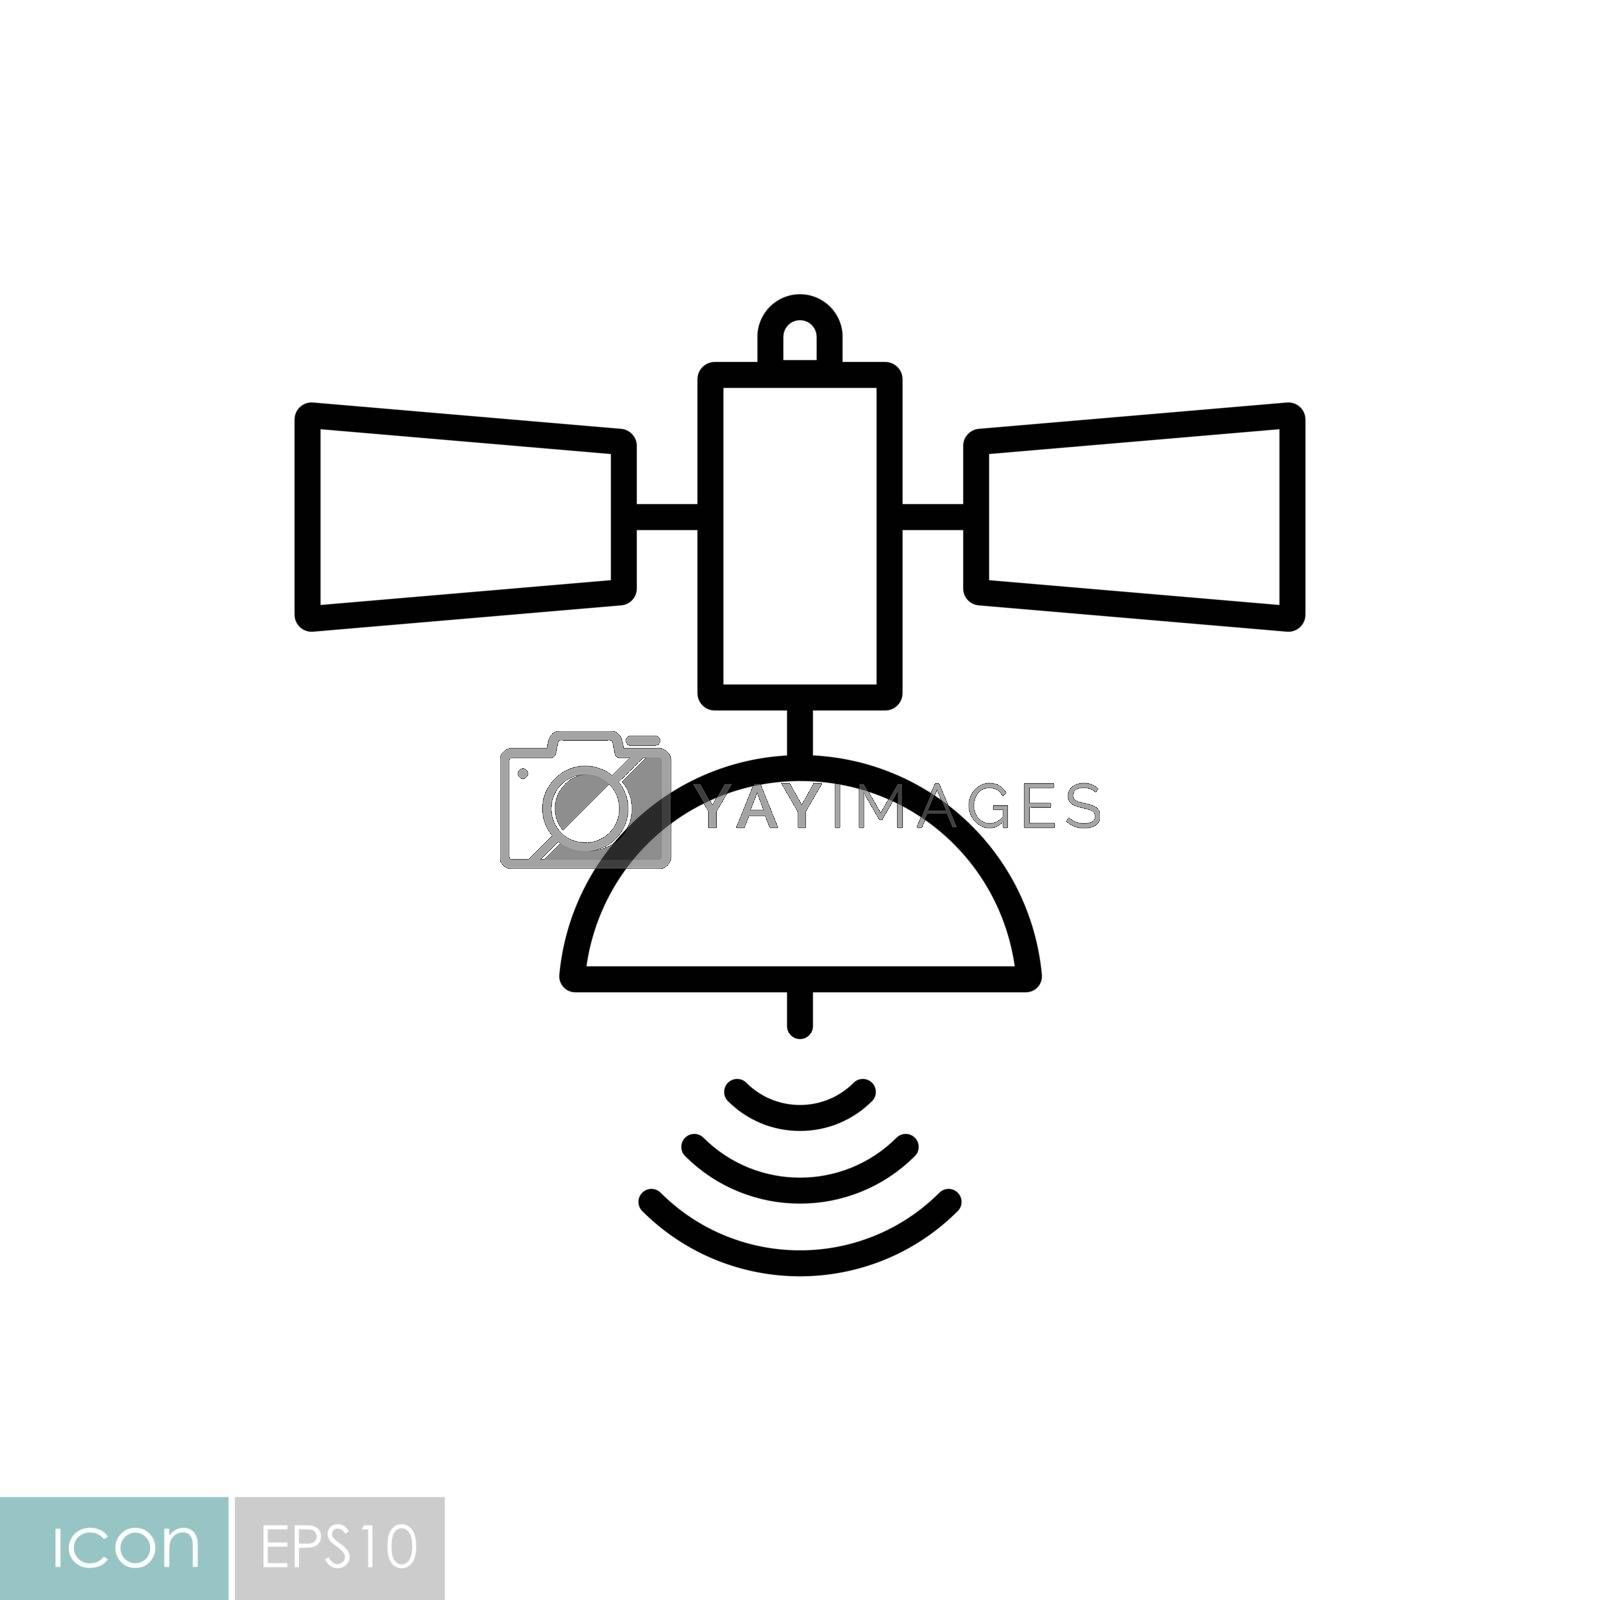 Satellite vector icon. Navigation sign. Graph symbol for travel and tourism web site and apps design, logo, app, UI